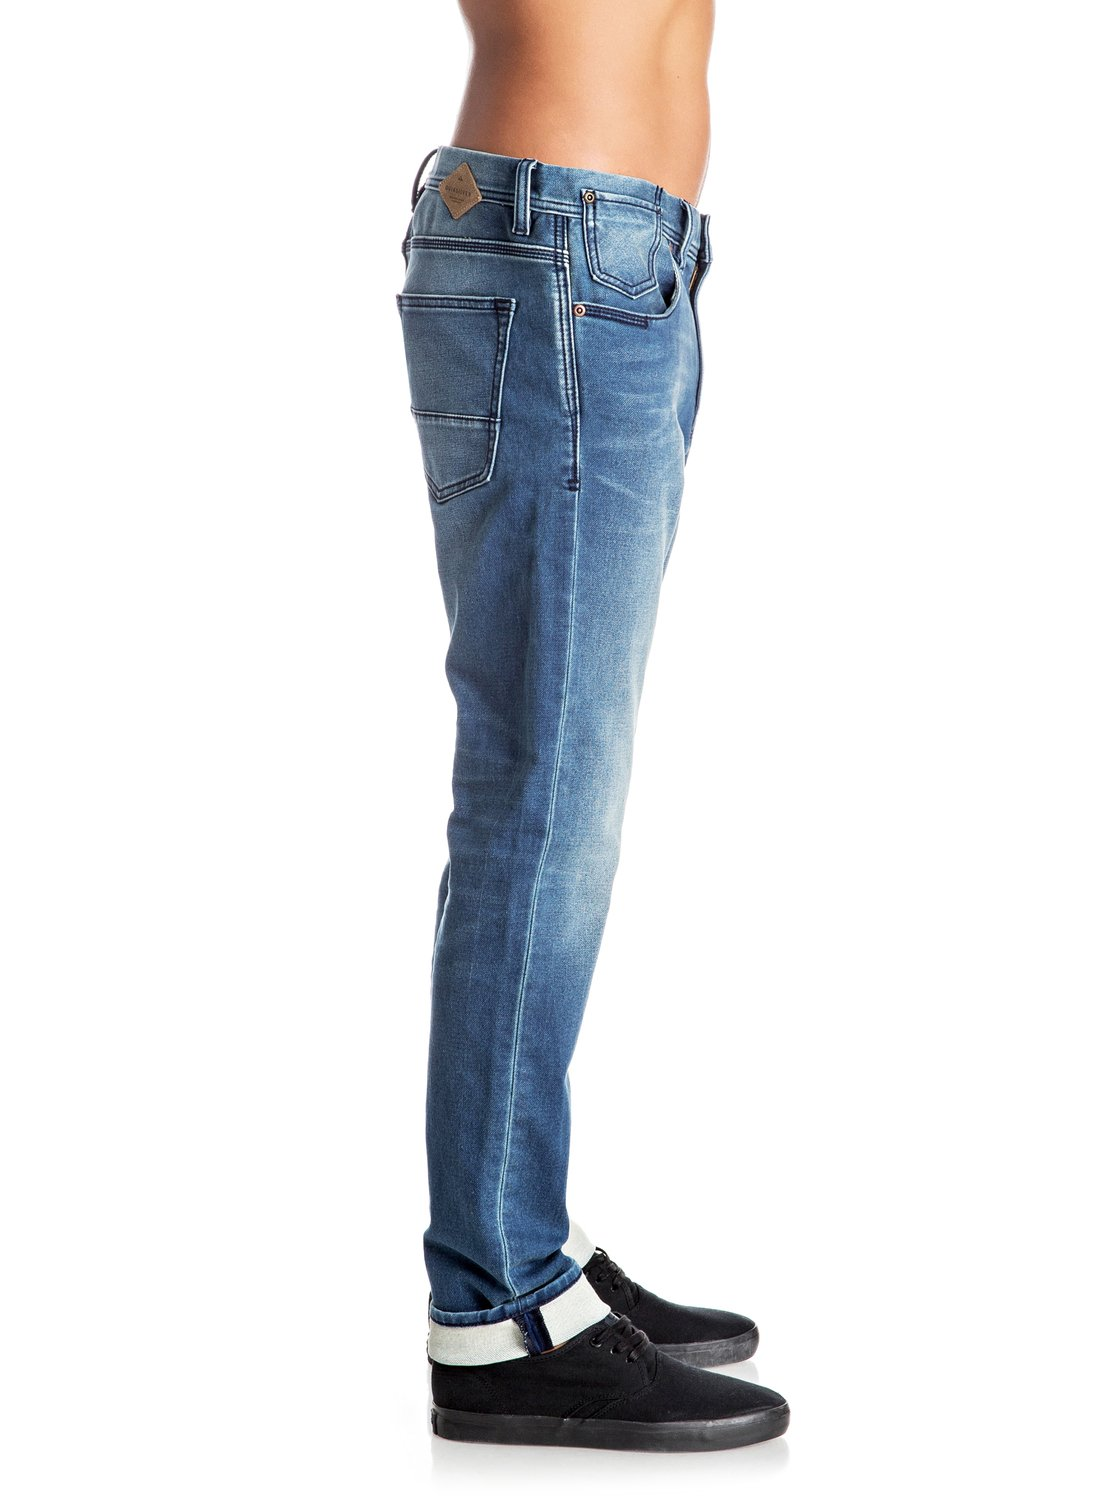 At once relaxed and refined, these just-right straight jeans have a French-lady-with-a-capsule-wardrobe feel. Plus, the 9 1/2